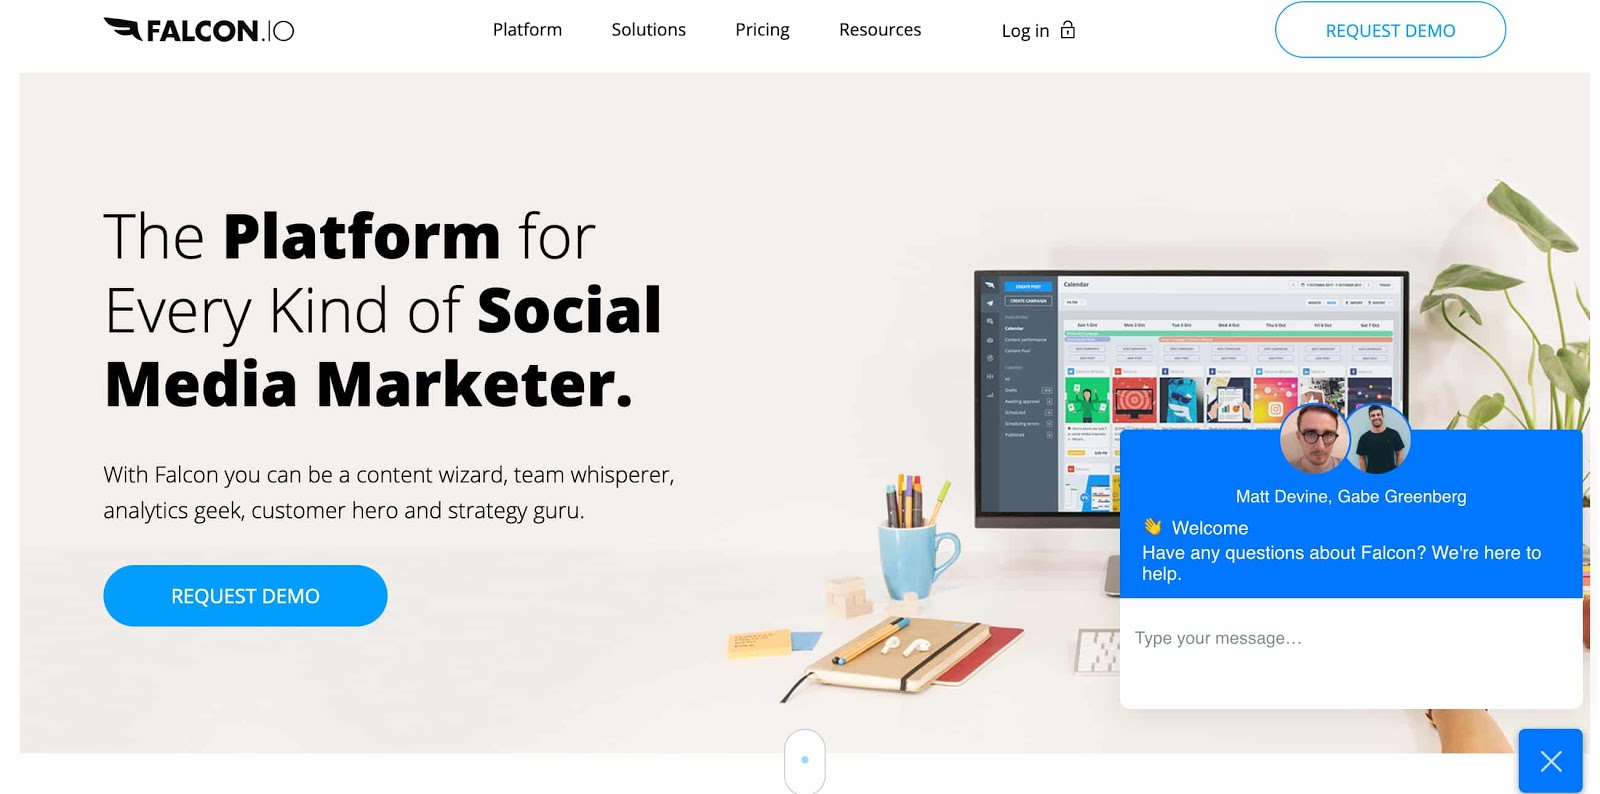 falcon.io social media management tool